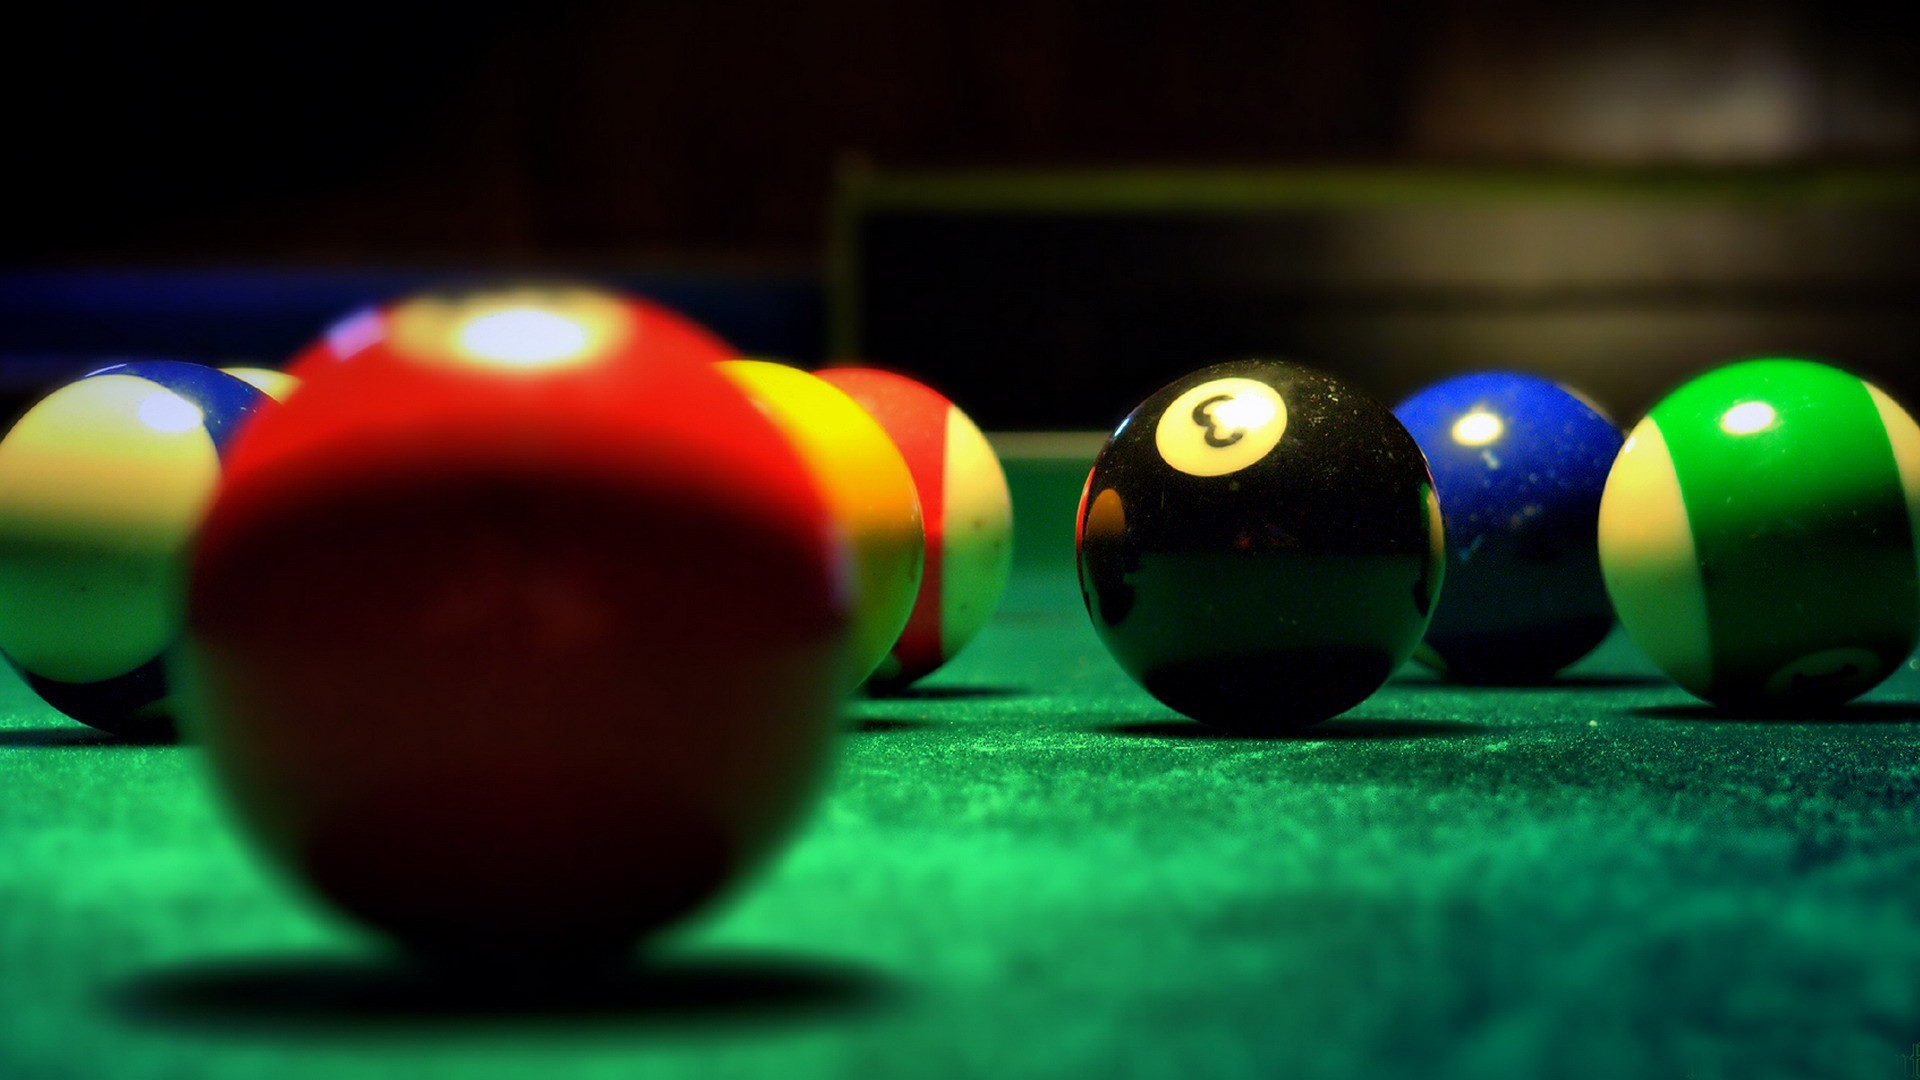 1920x1080 Picture of pool balls. The picture focuses on the black 8 ball.